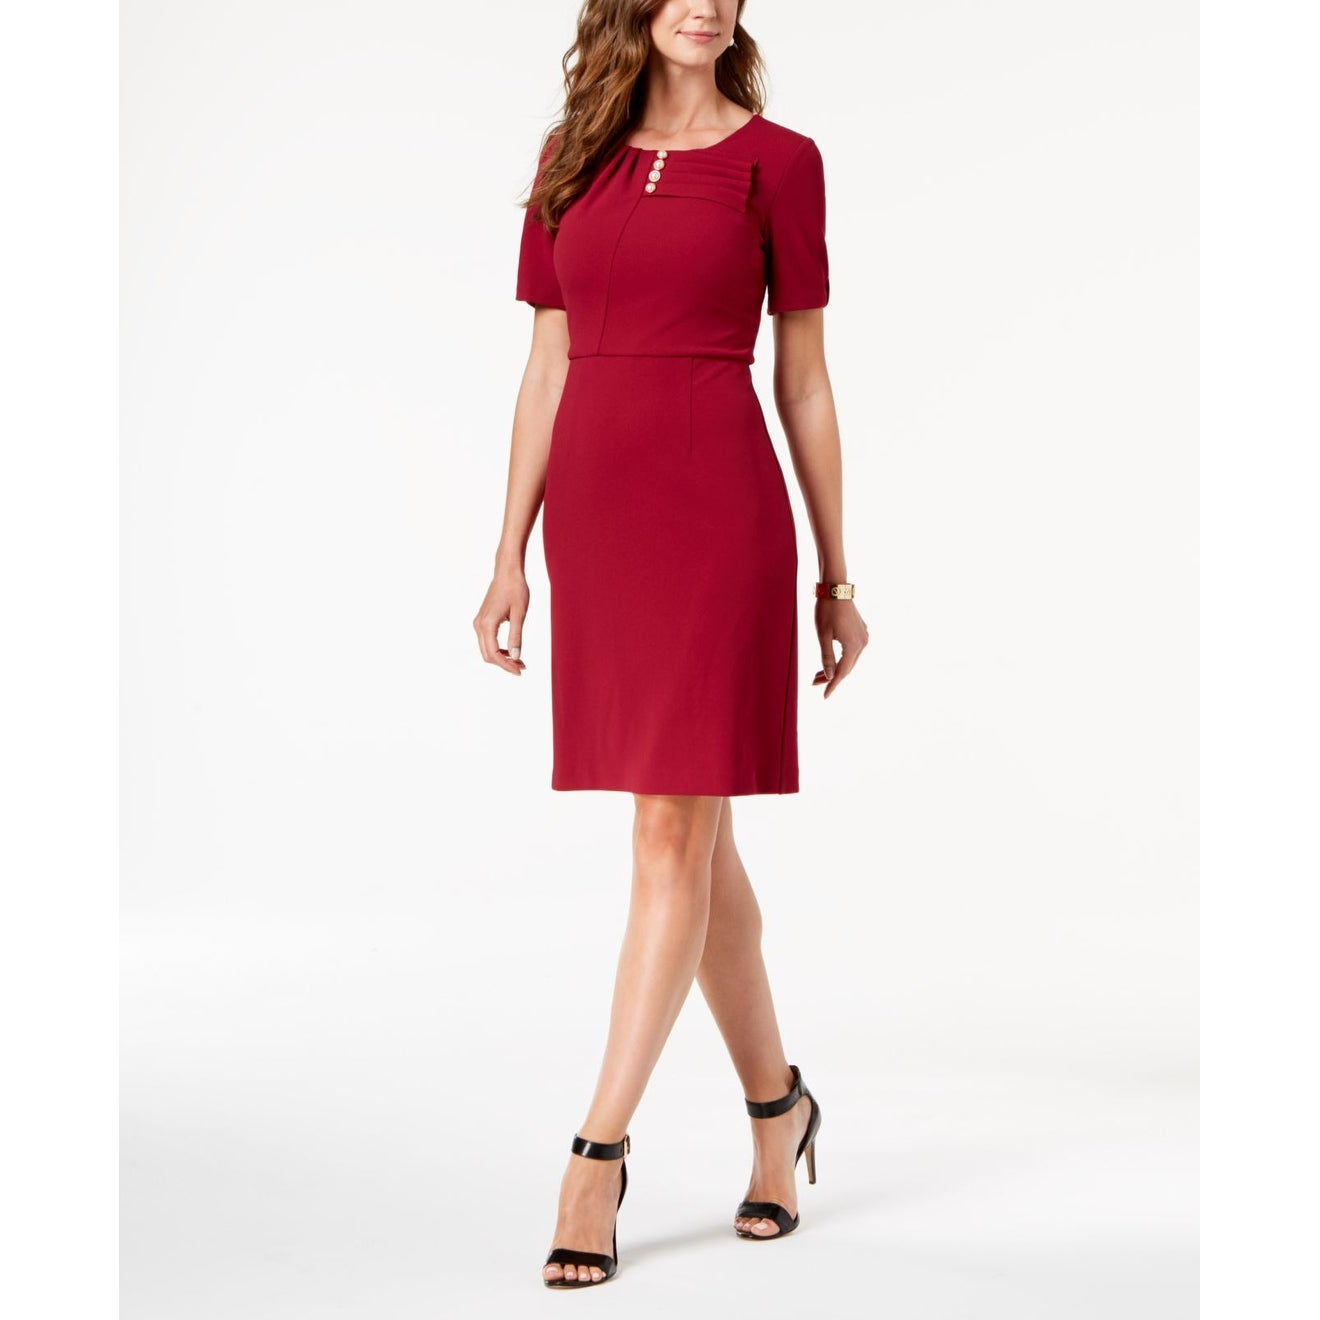 fc07b65c8c0f Ivanka Trump Dresses | Find Great Women's Clothing Deals Shopping at  Overstock